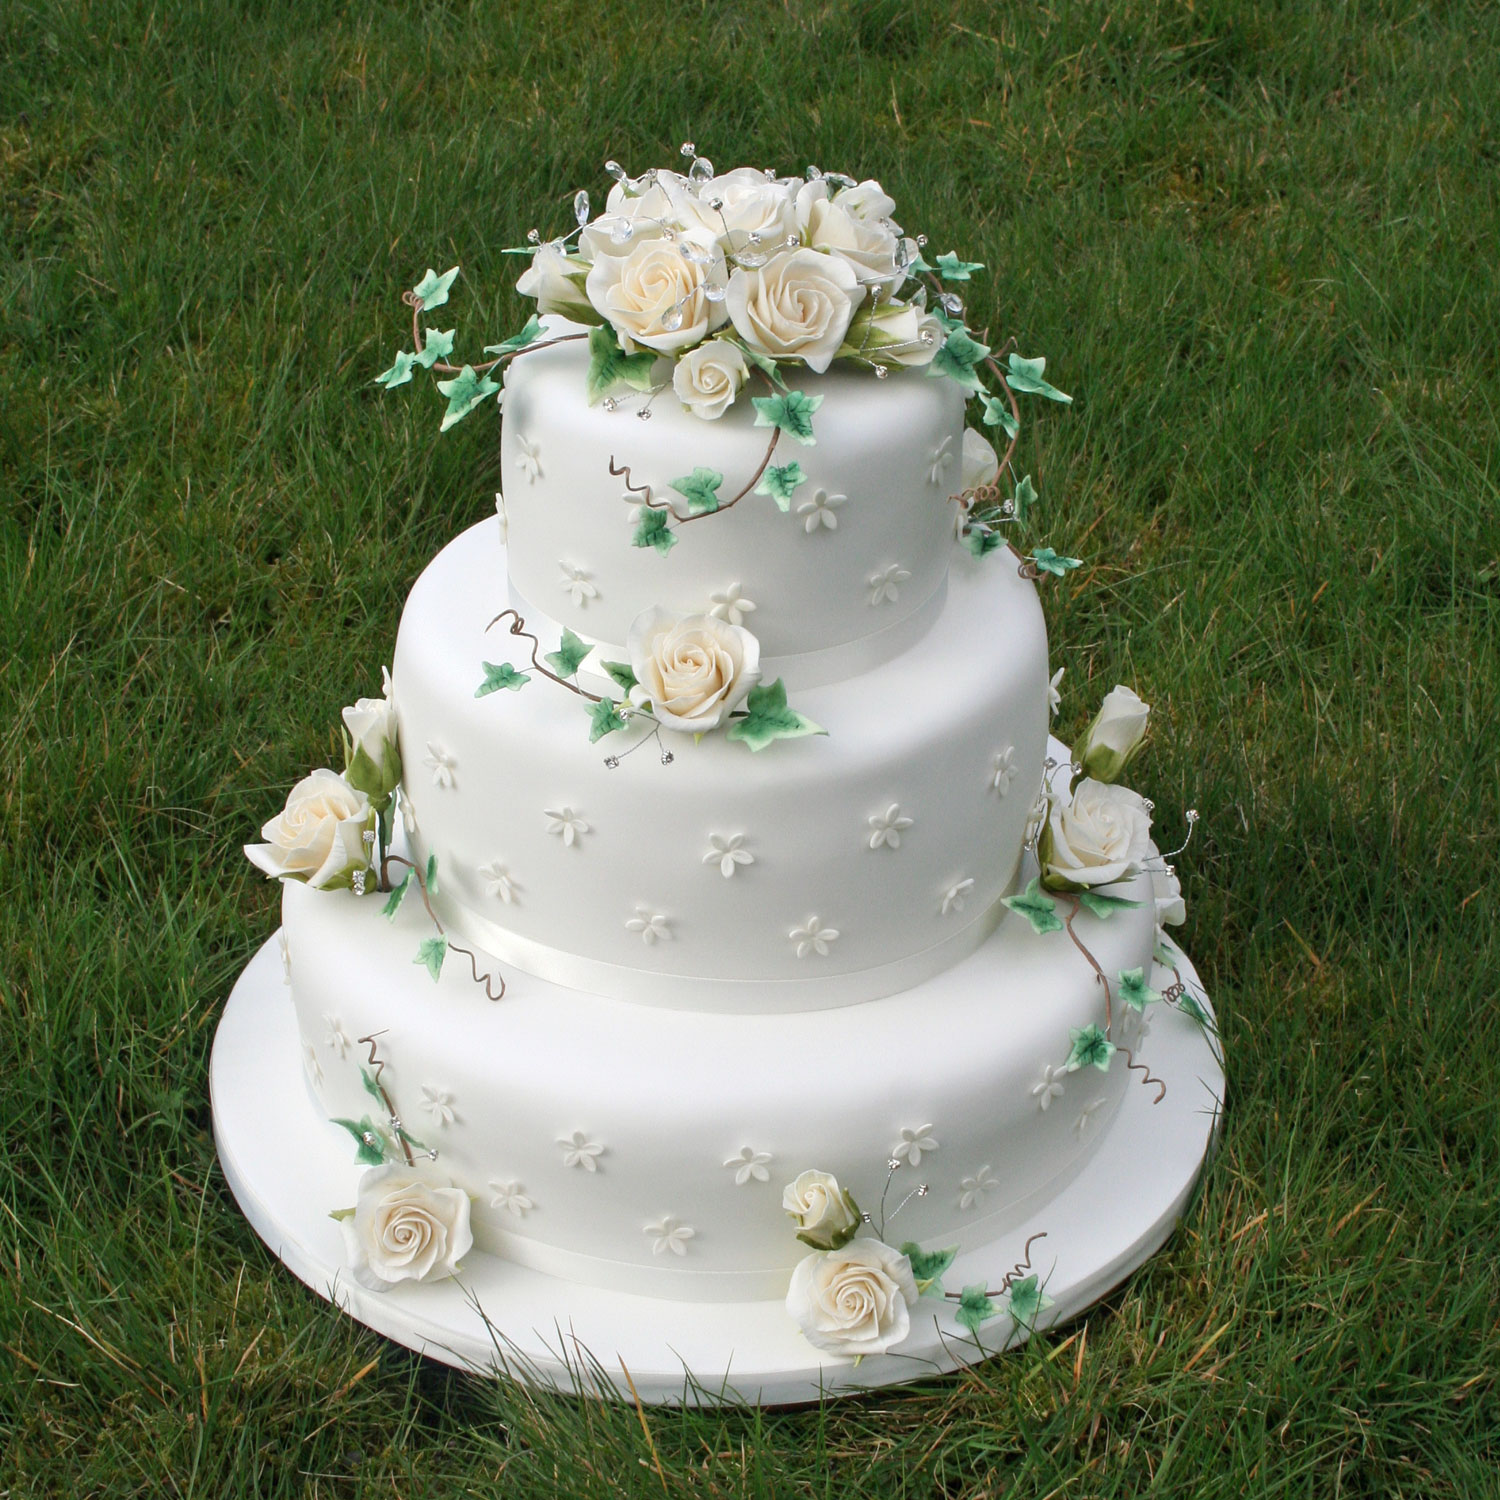 3 tier Wedding Cake with Sugarcraft Flowers